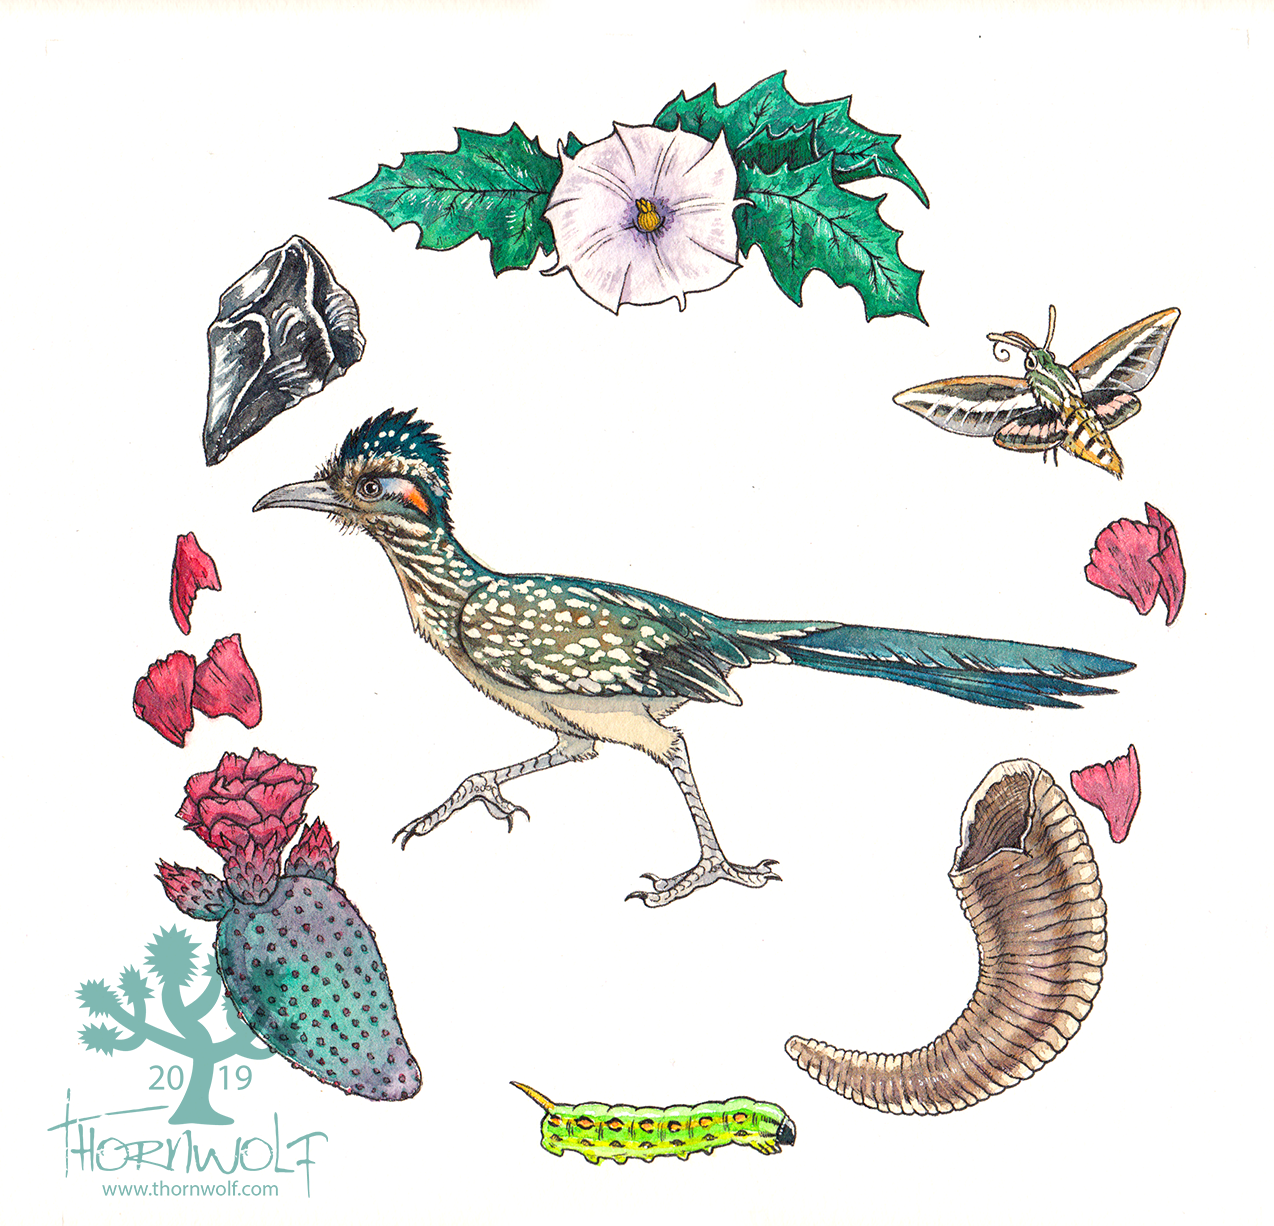 Roadrunner with jimsonweed, obsidian, beavertail cactus, sphinx moth caterpillar and adult, and bighorn sheep horn.